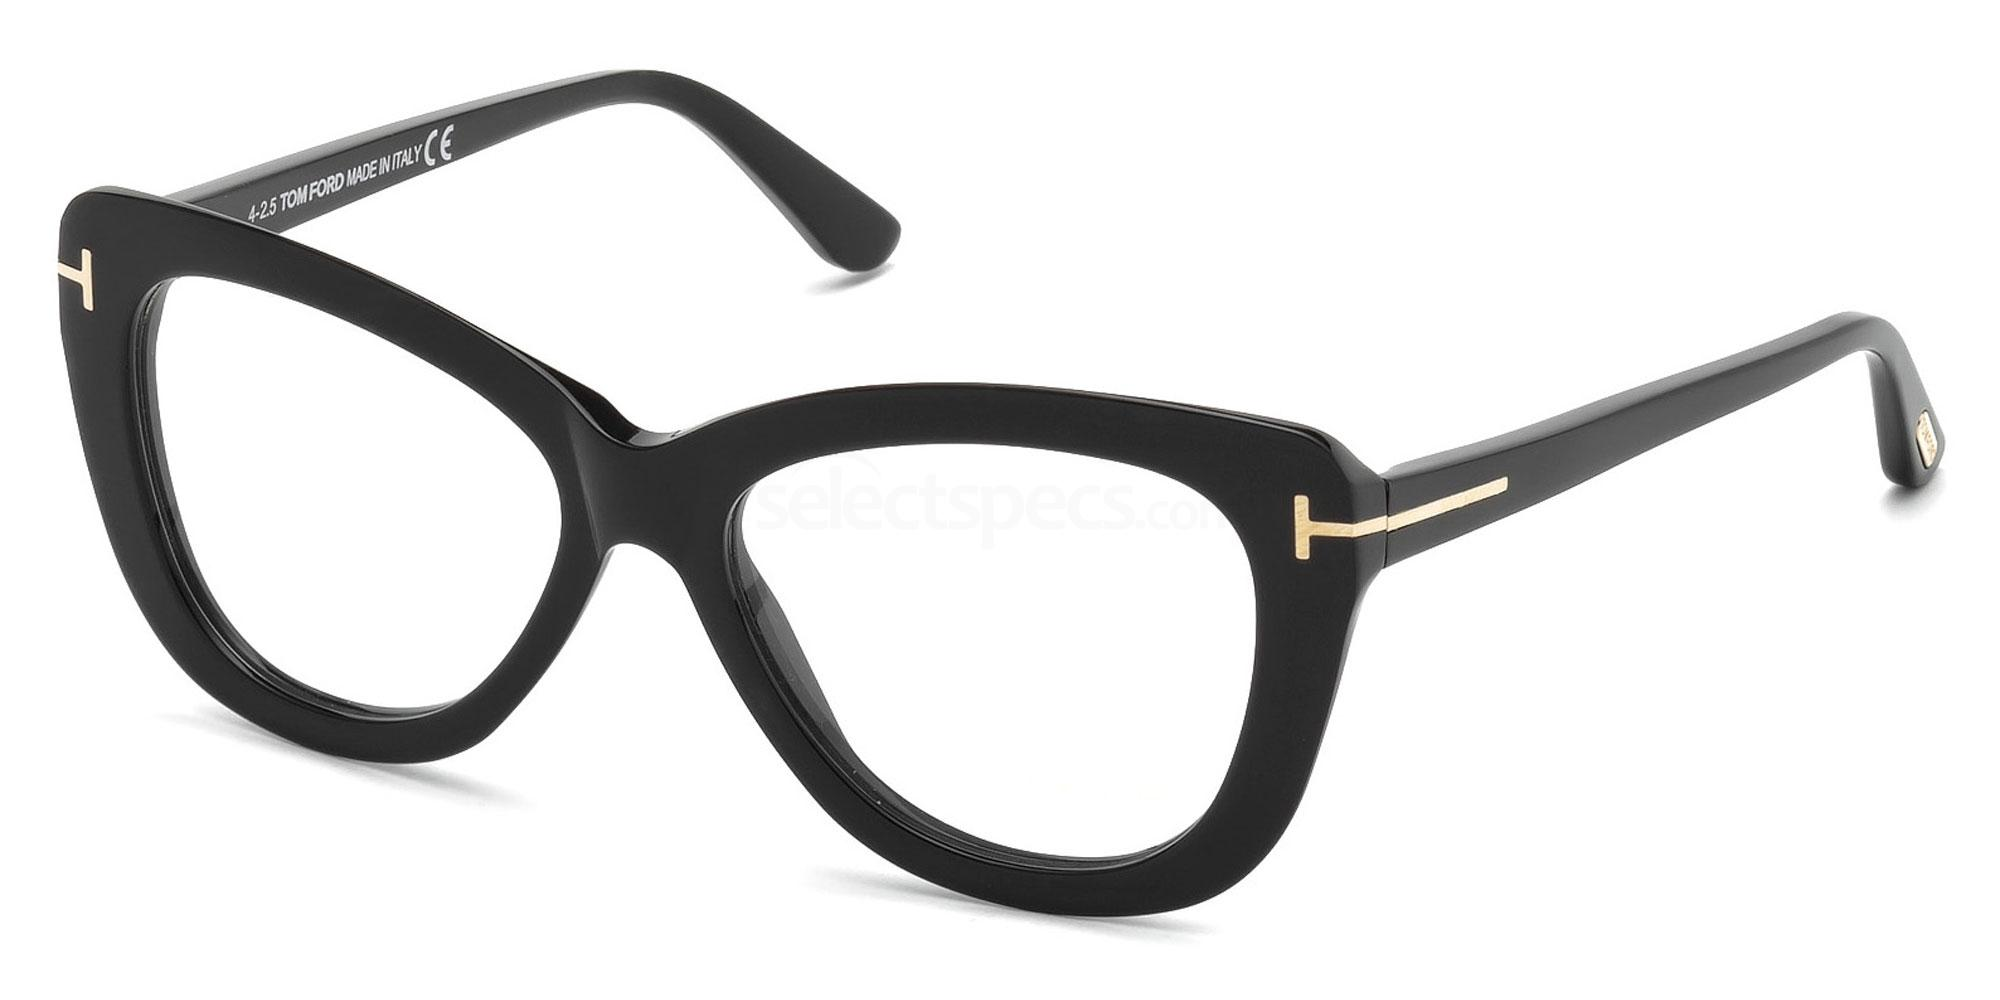 001 FT5414 Glasses, Tom Ford